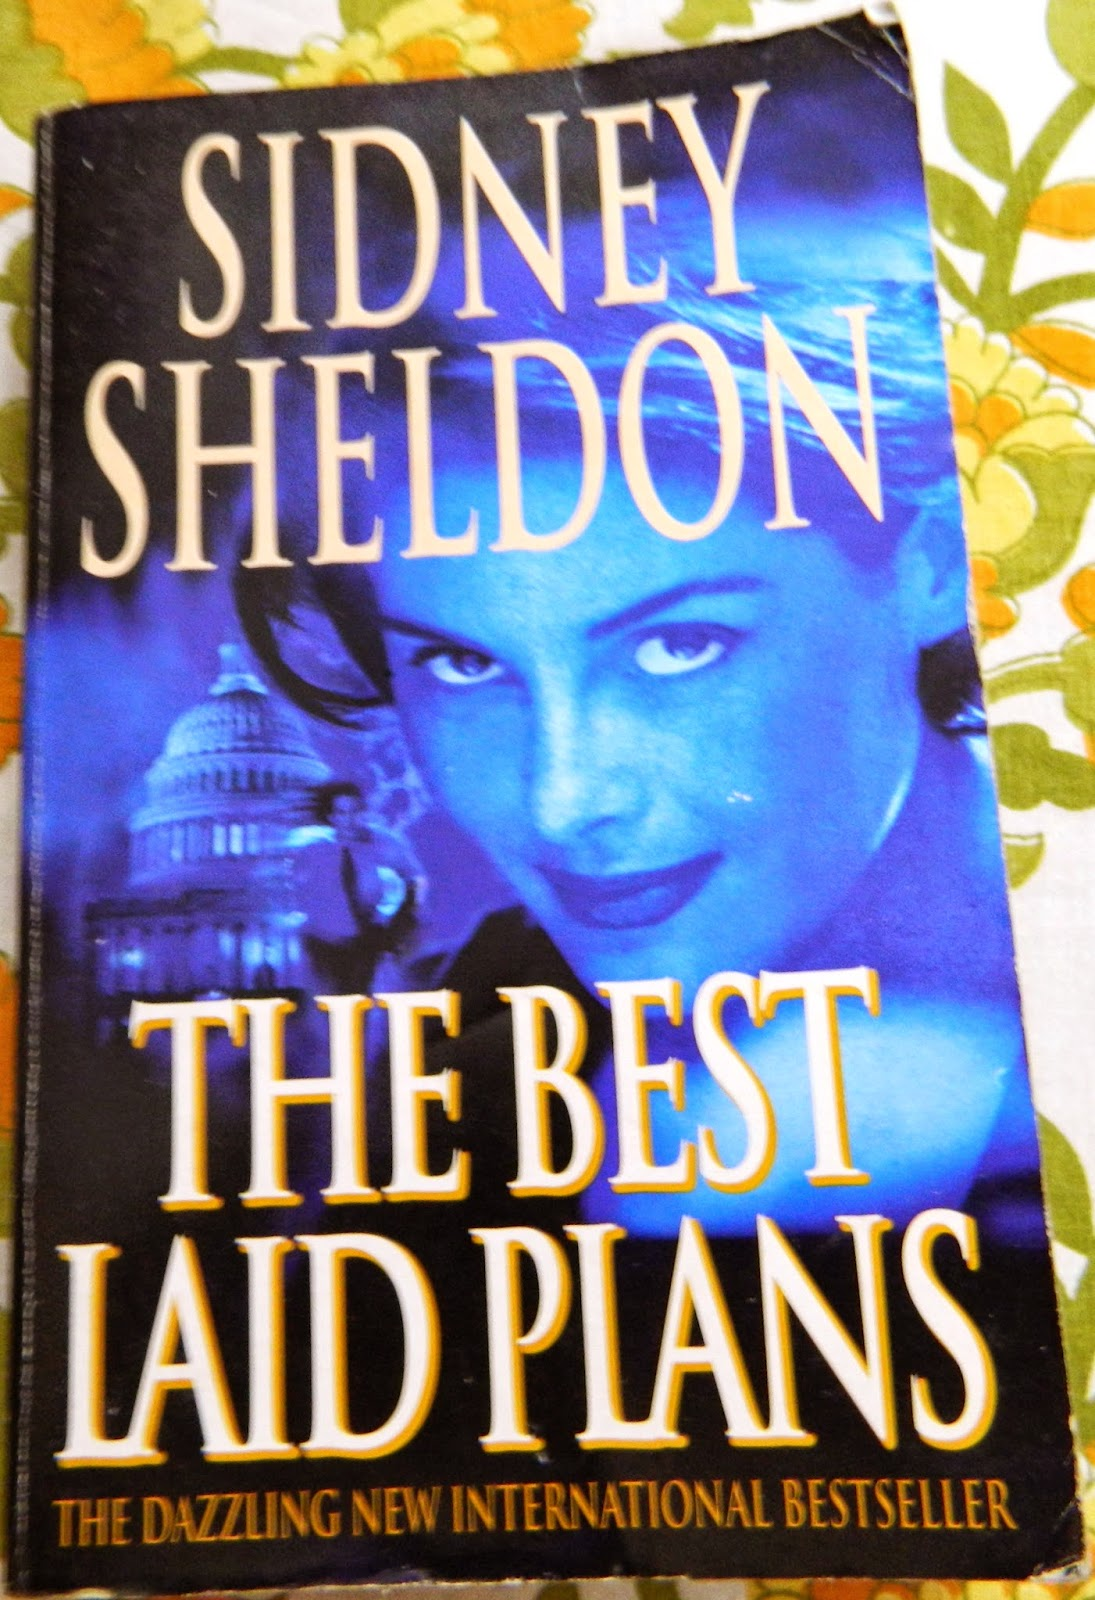 The best laid plans by sidney sheldon cover